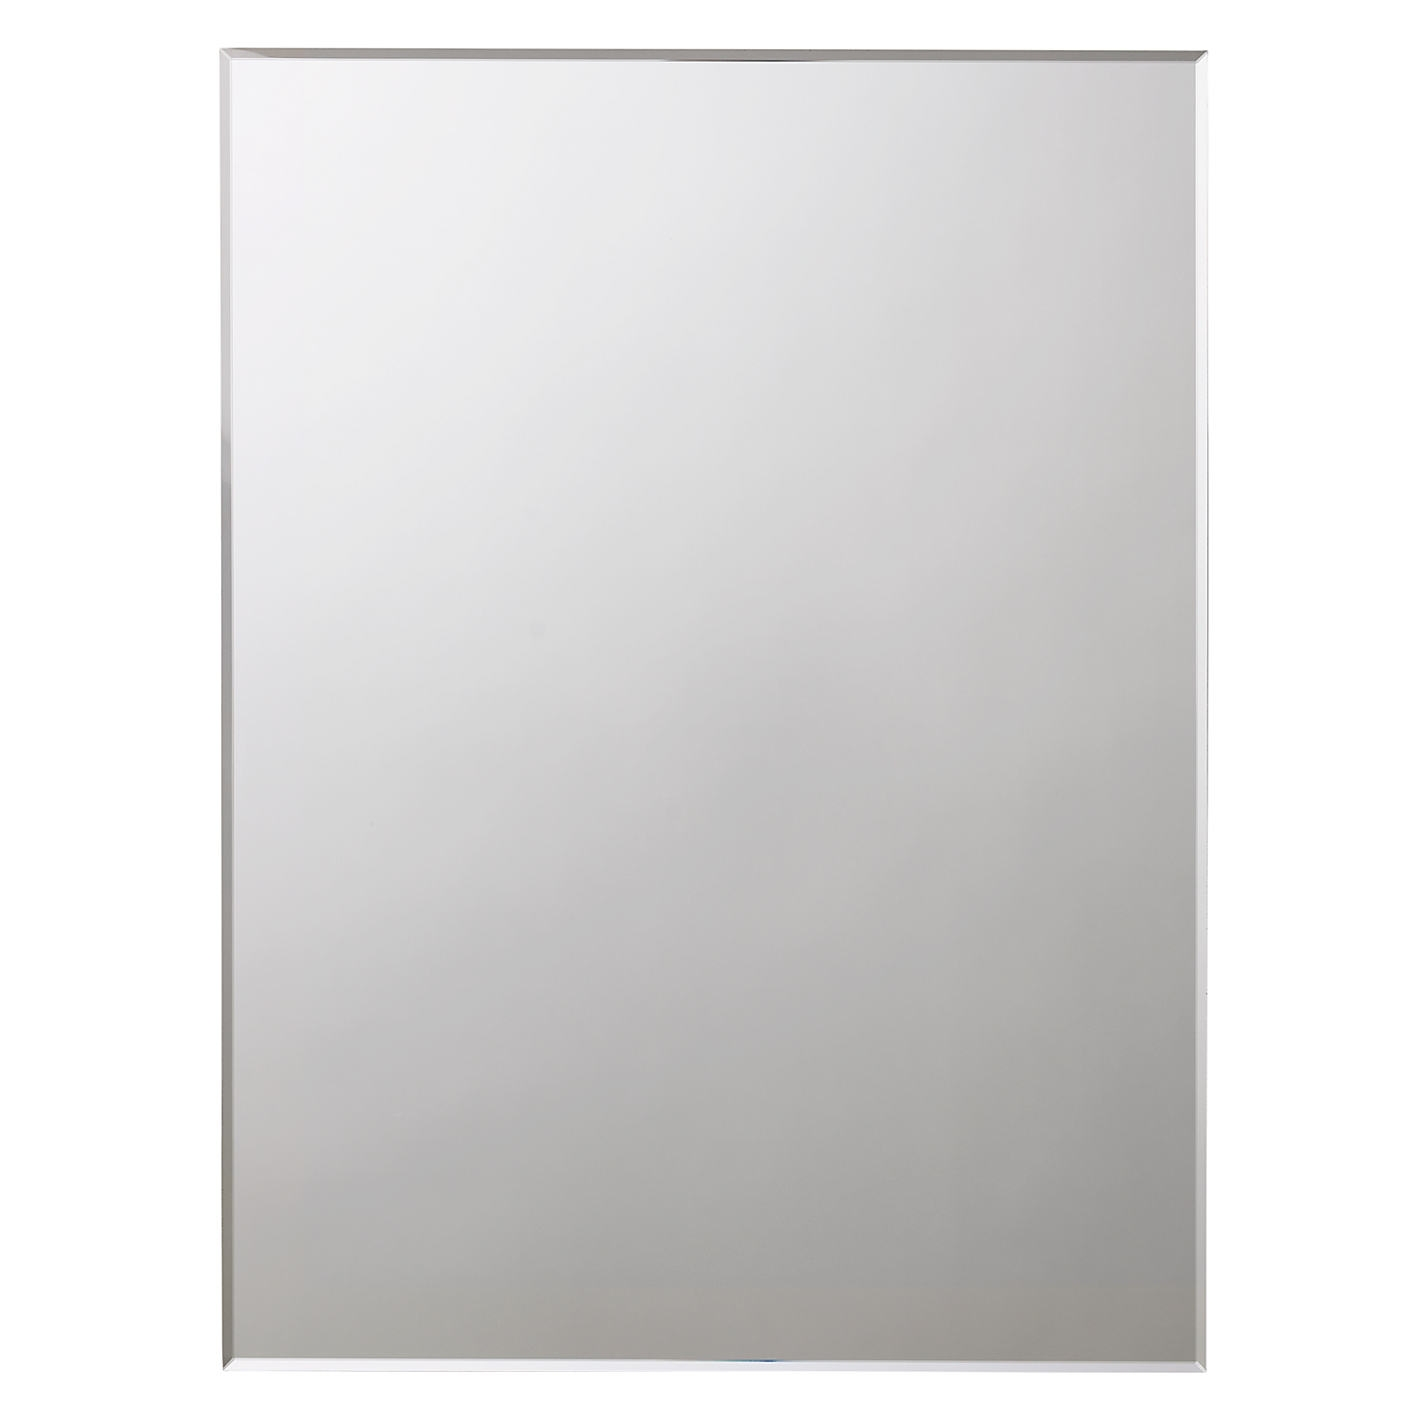 Featured Image of Bevelled Edge Mirrors